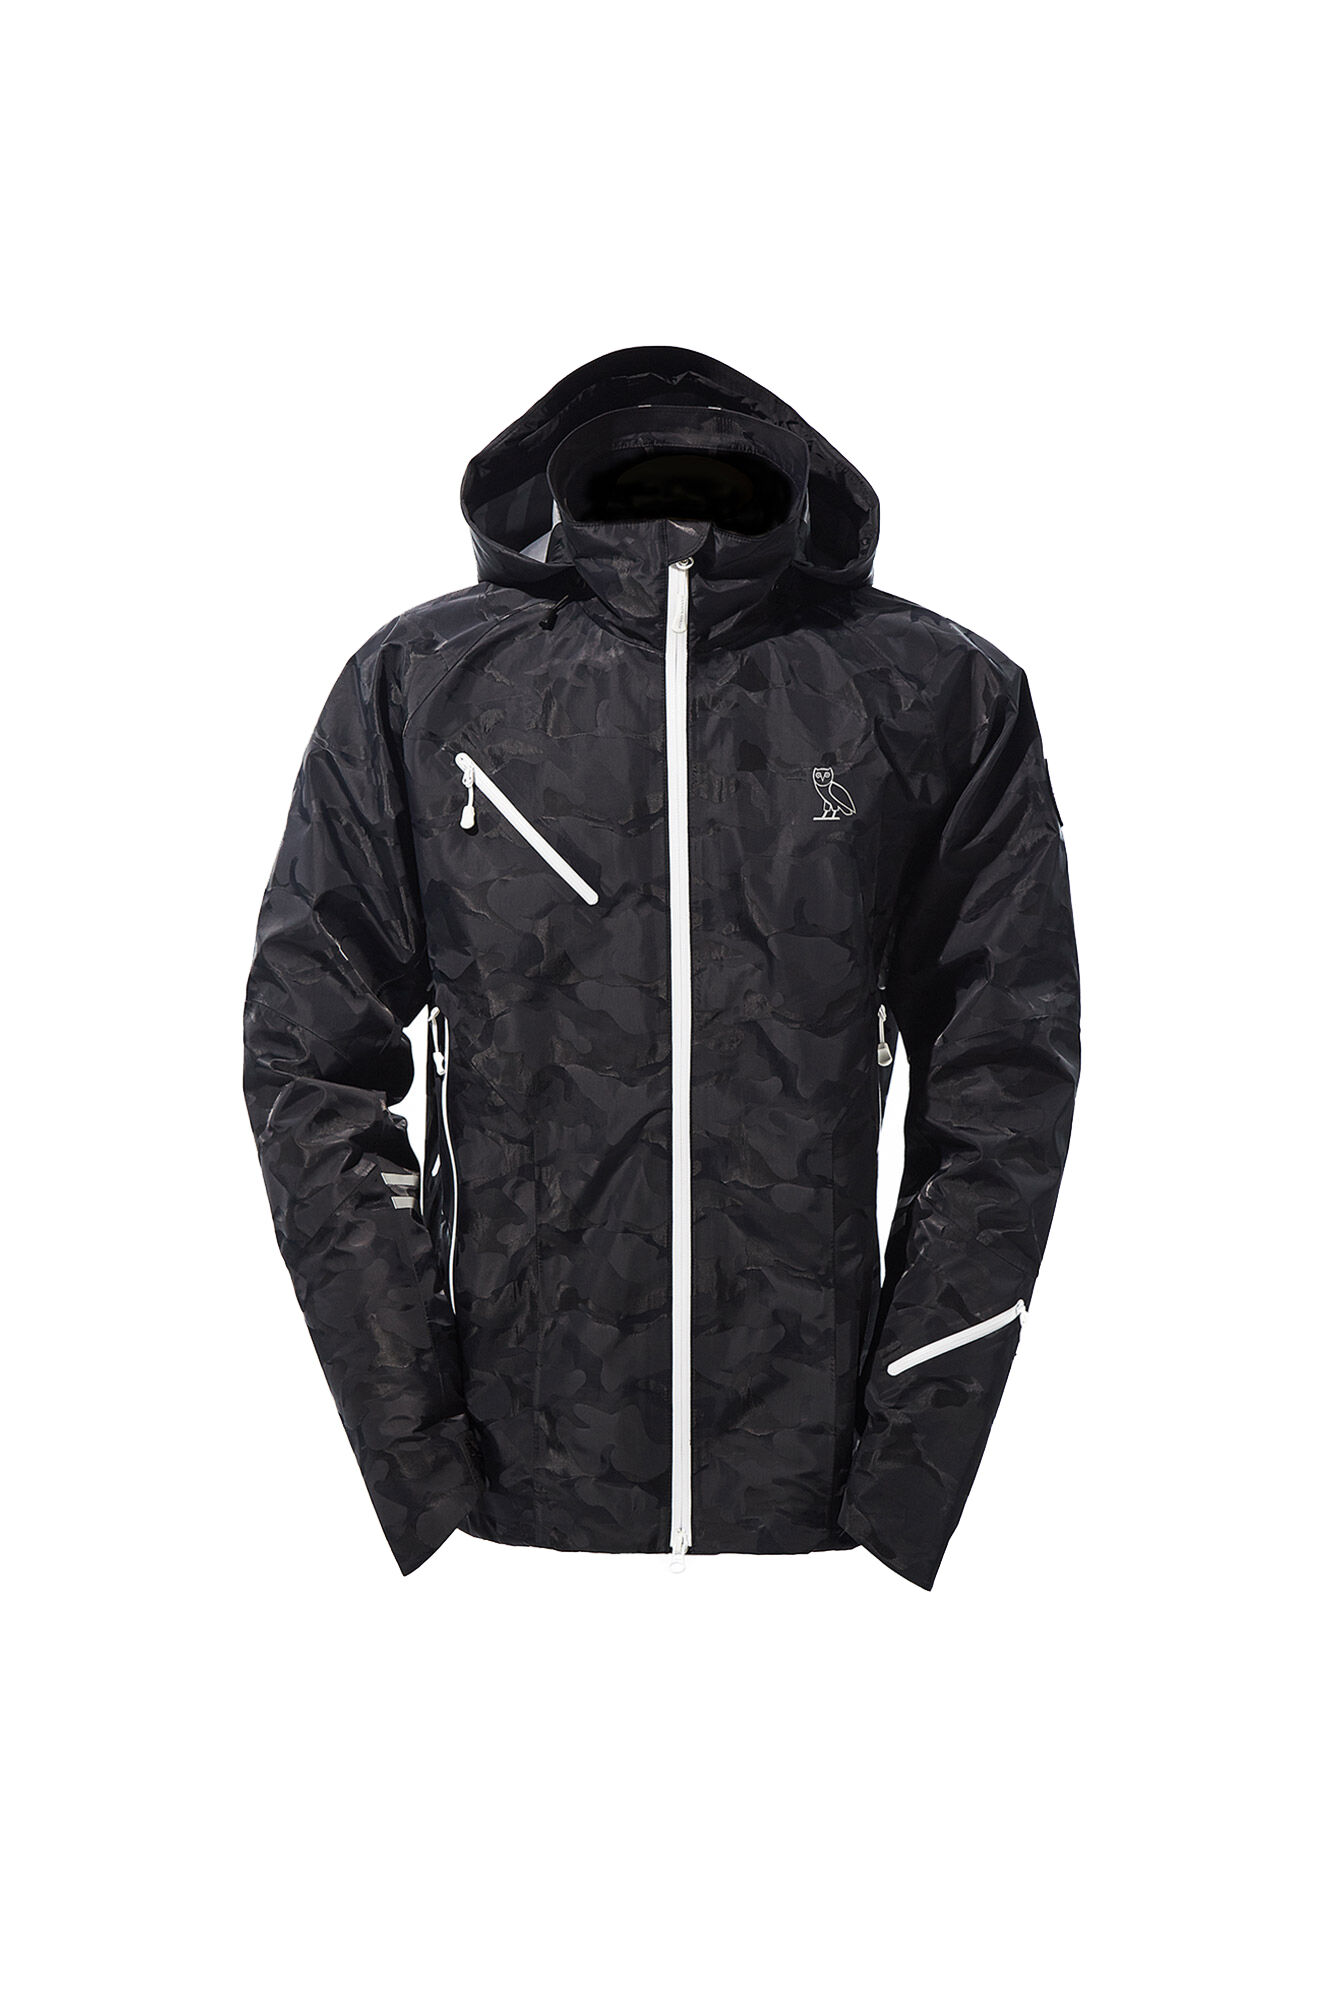 Canada Goose expedition parka online store - Men's OVO Timber Shell   Canada Goose?